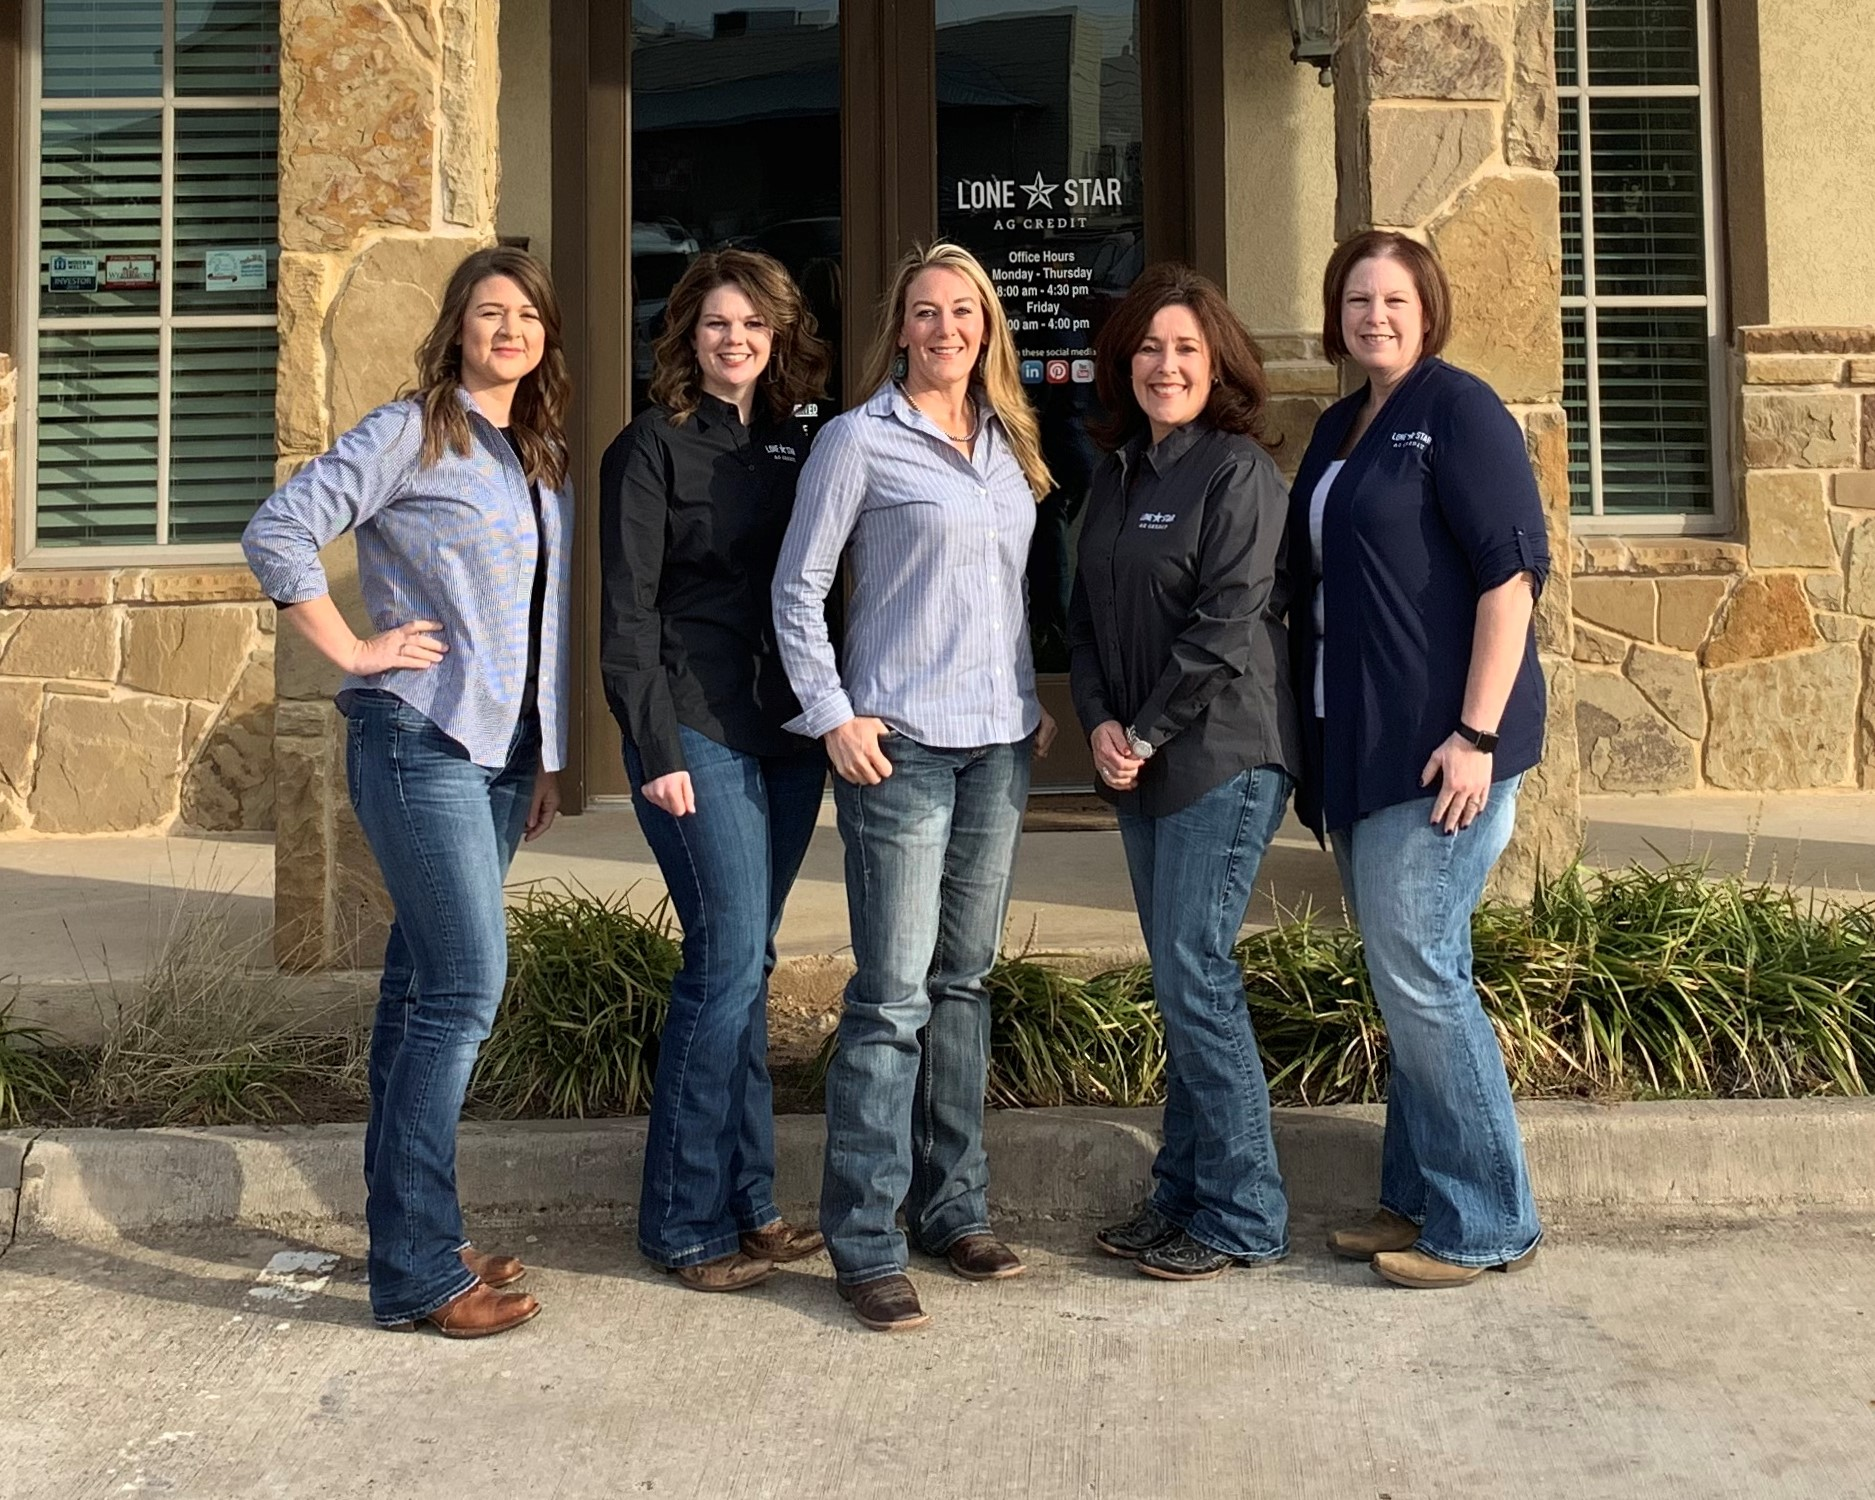 Weatherford2 branch staff